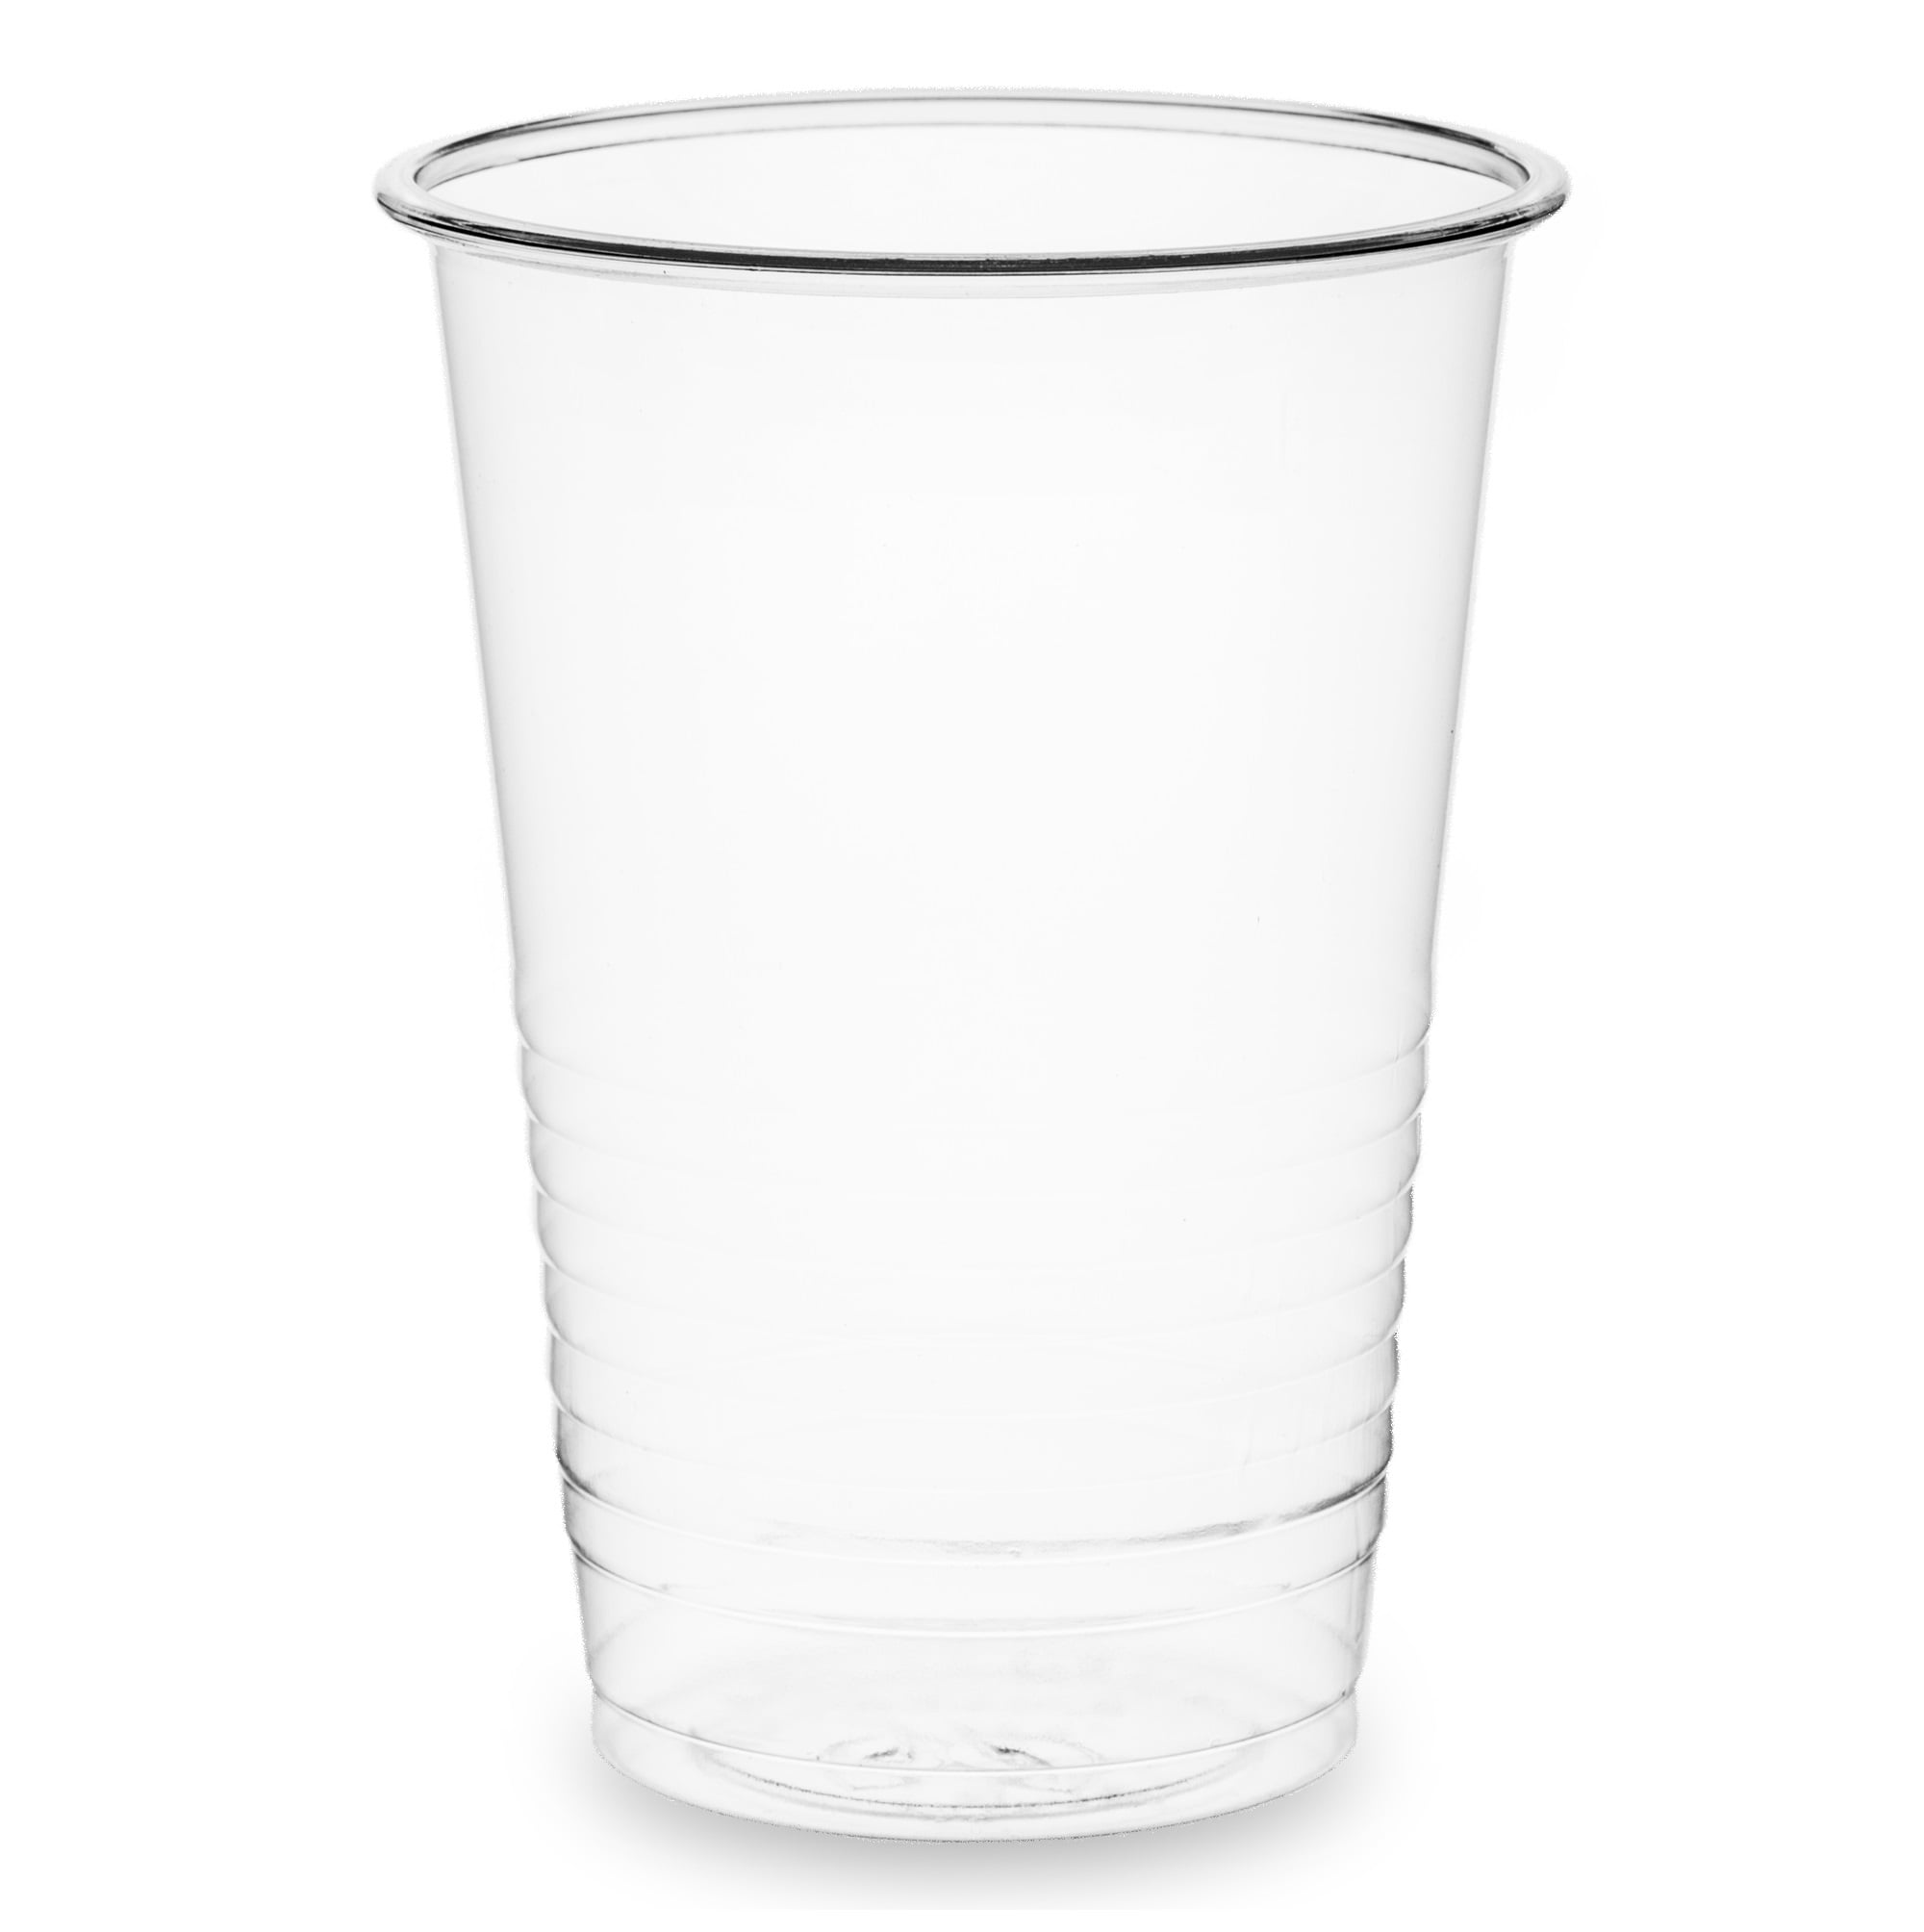 7oz Biodegradable Cups Eco Friendly 200ml Box Of 1000